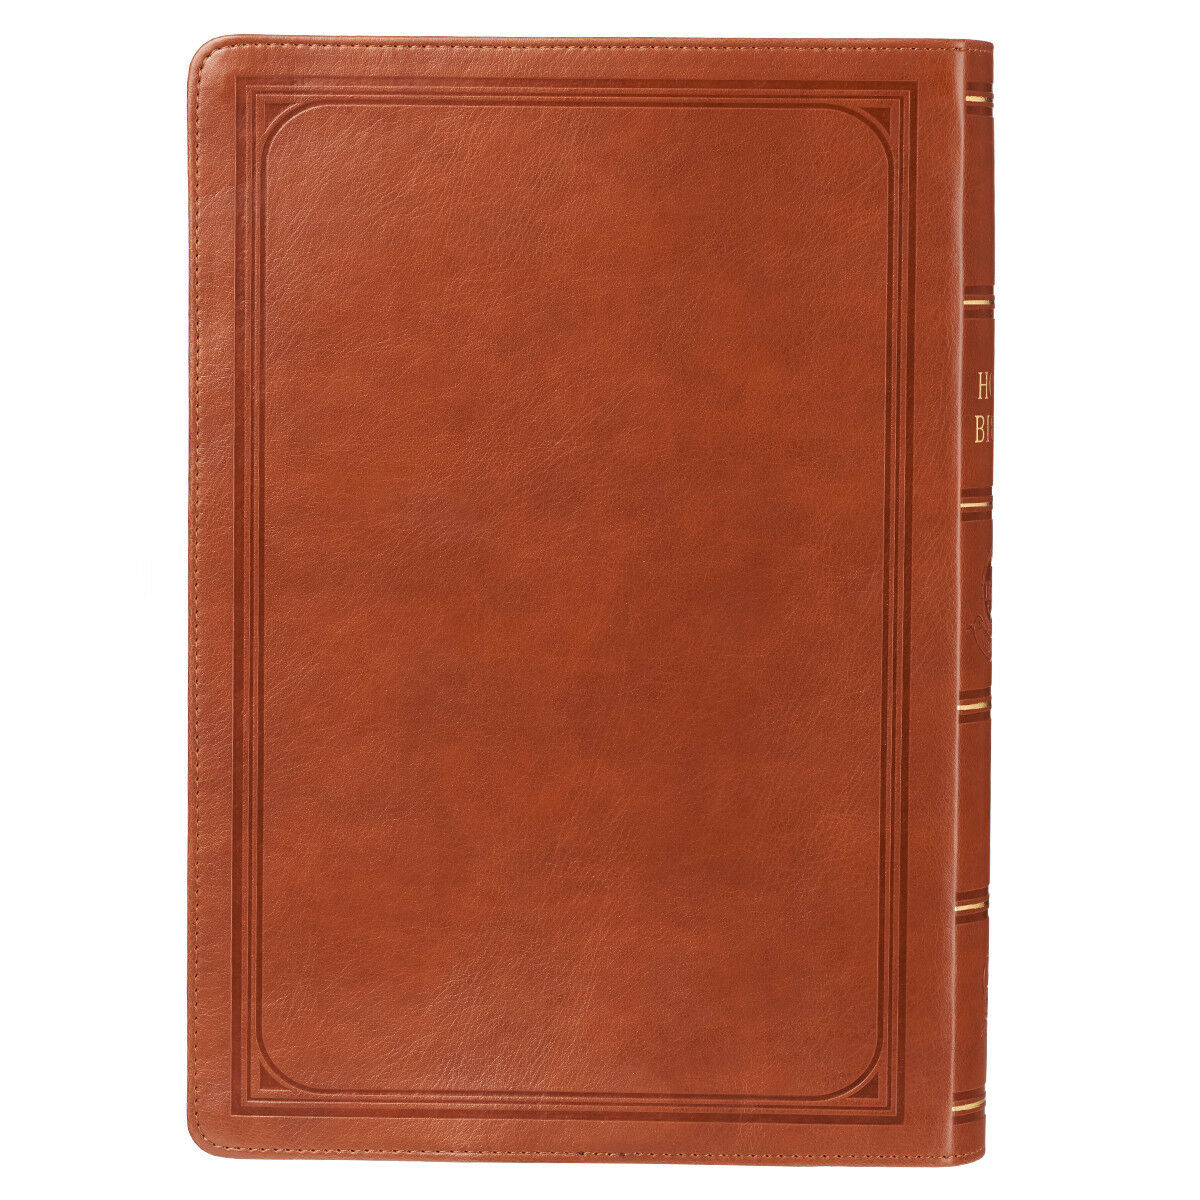 KJV HOLY BIBLE King James Version Giant Print Faux Leather Edition Tan NEW